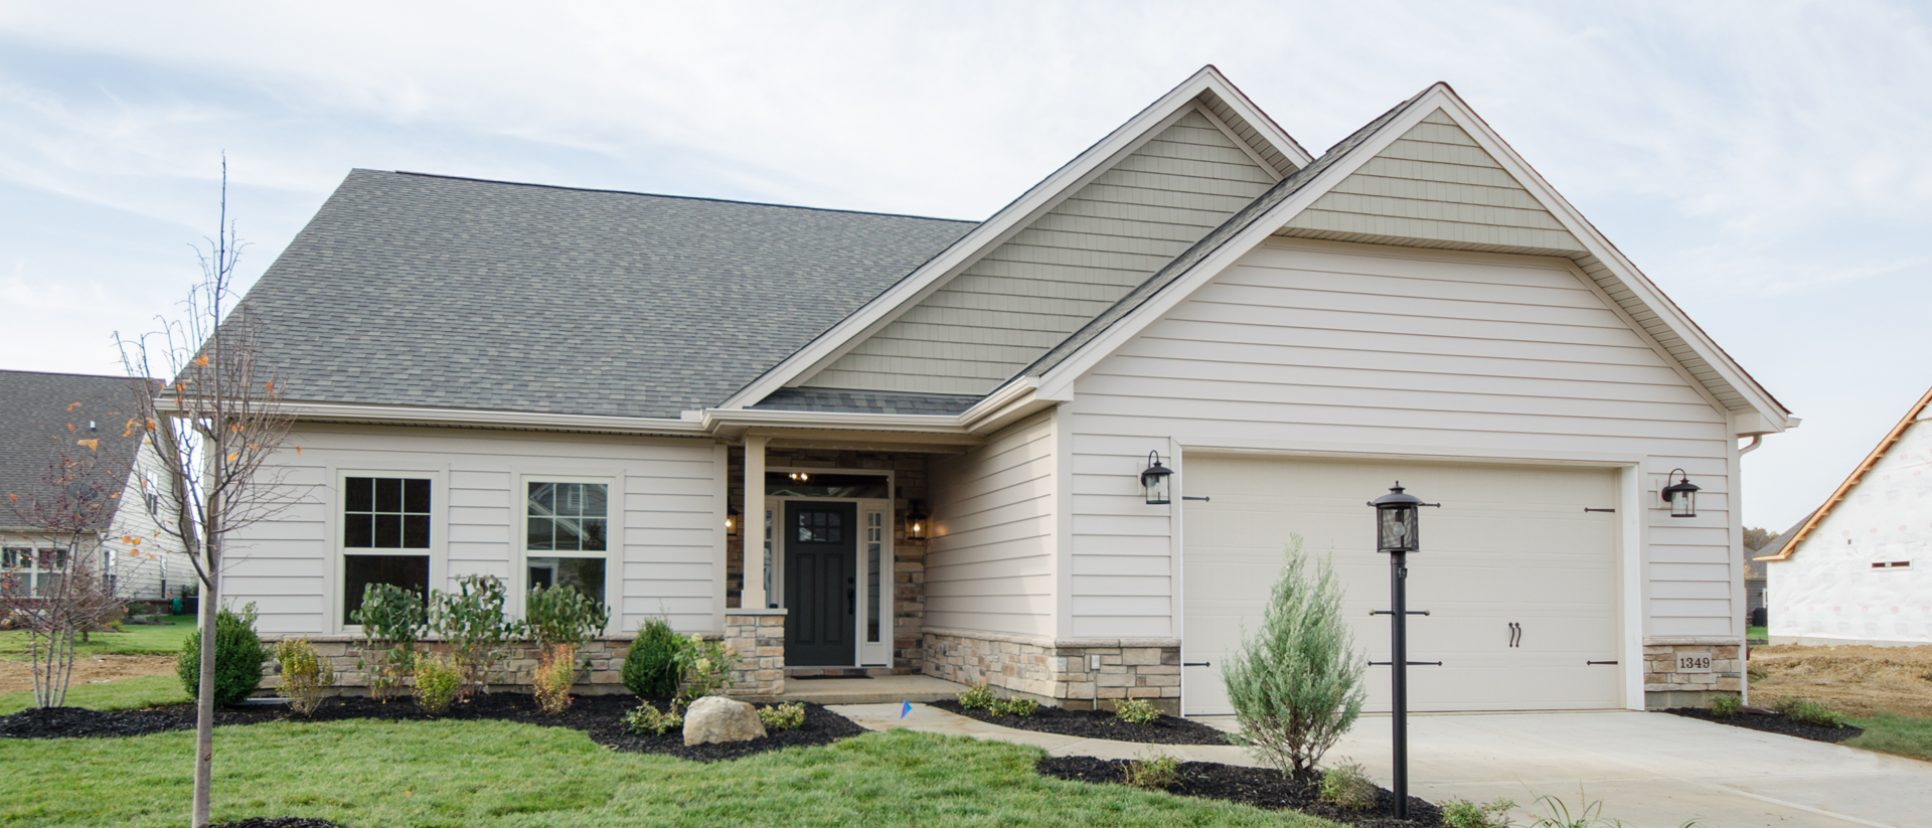 Custom exterior in The Jocelyn at Soraya Farms. A custom move-in ready home by Design Homes and Development.